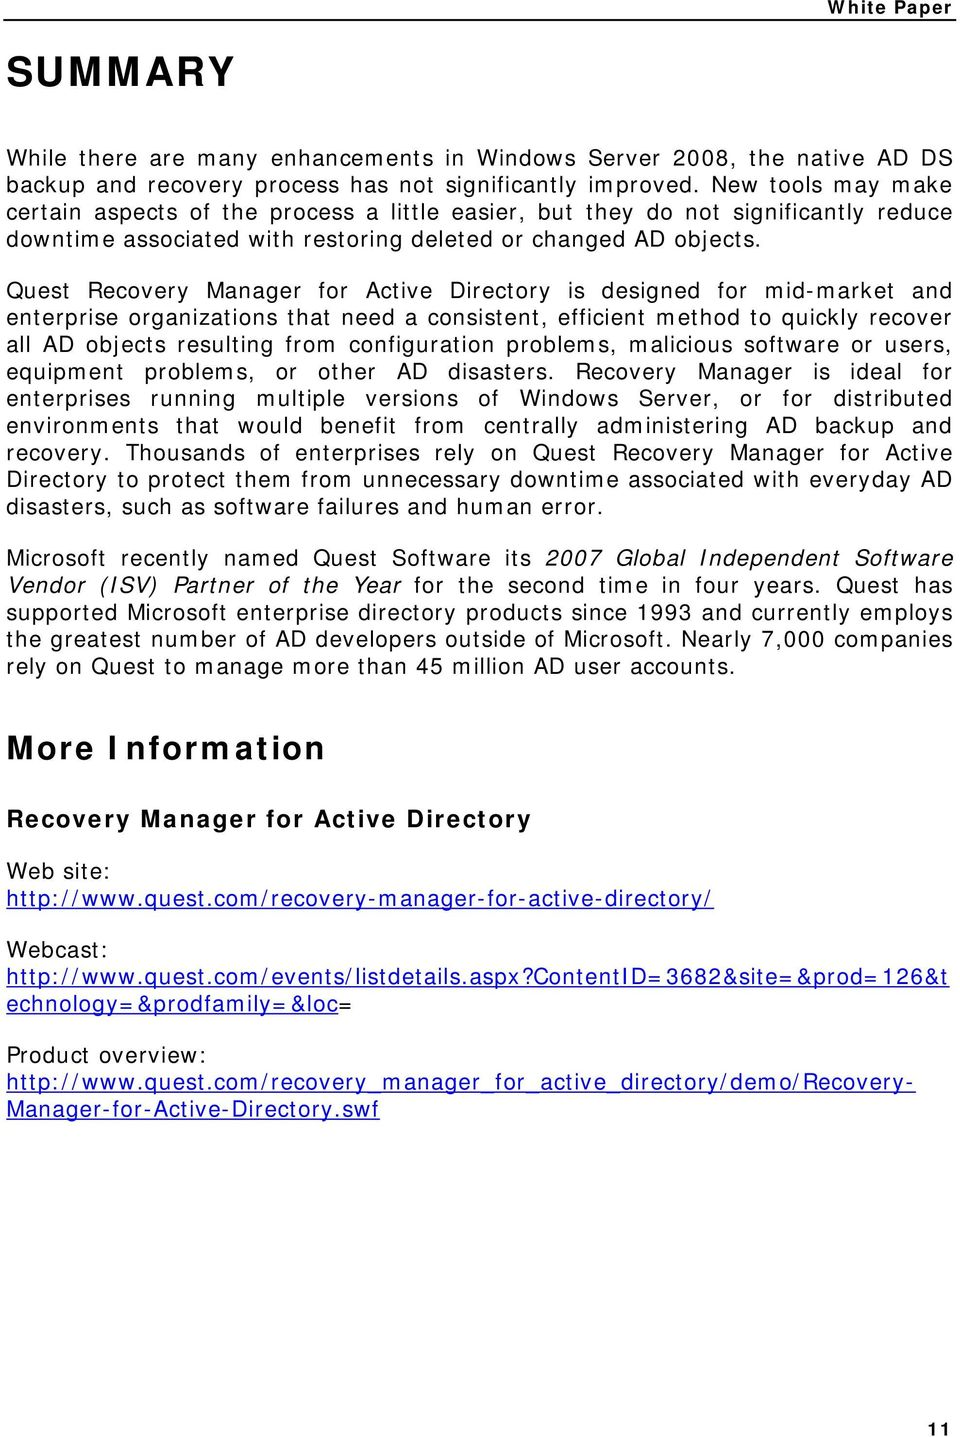 Quest Recovery Manager for Active Directory is designed for mid-market and enterprise organizations that need a consistent, efficient method to quickly recover all AD objects resulting from